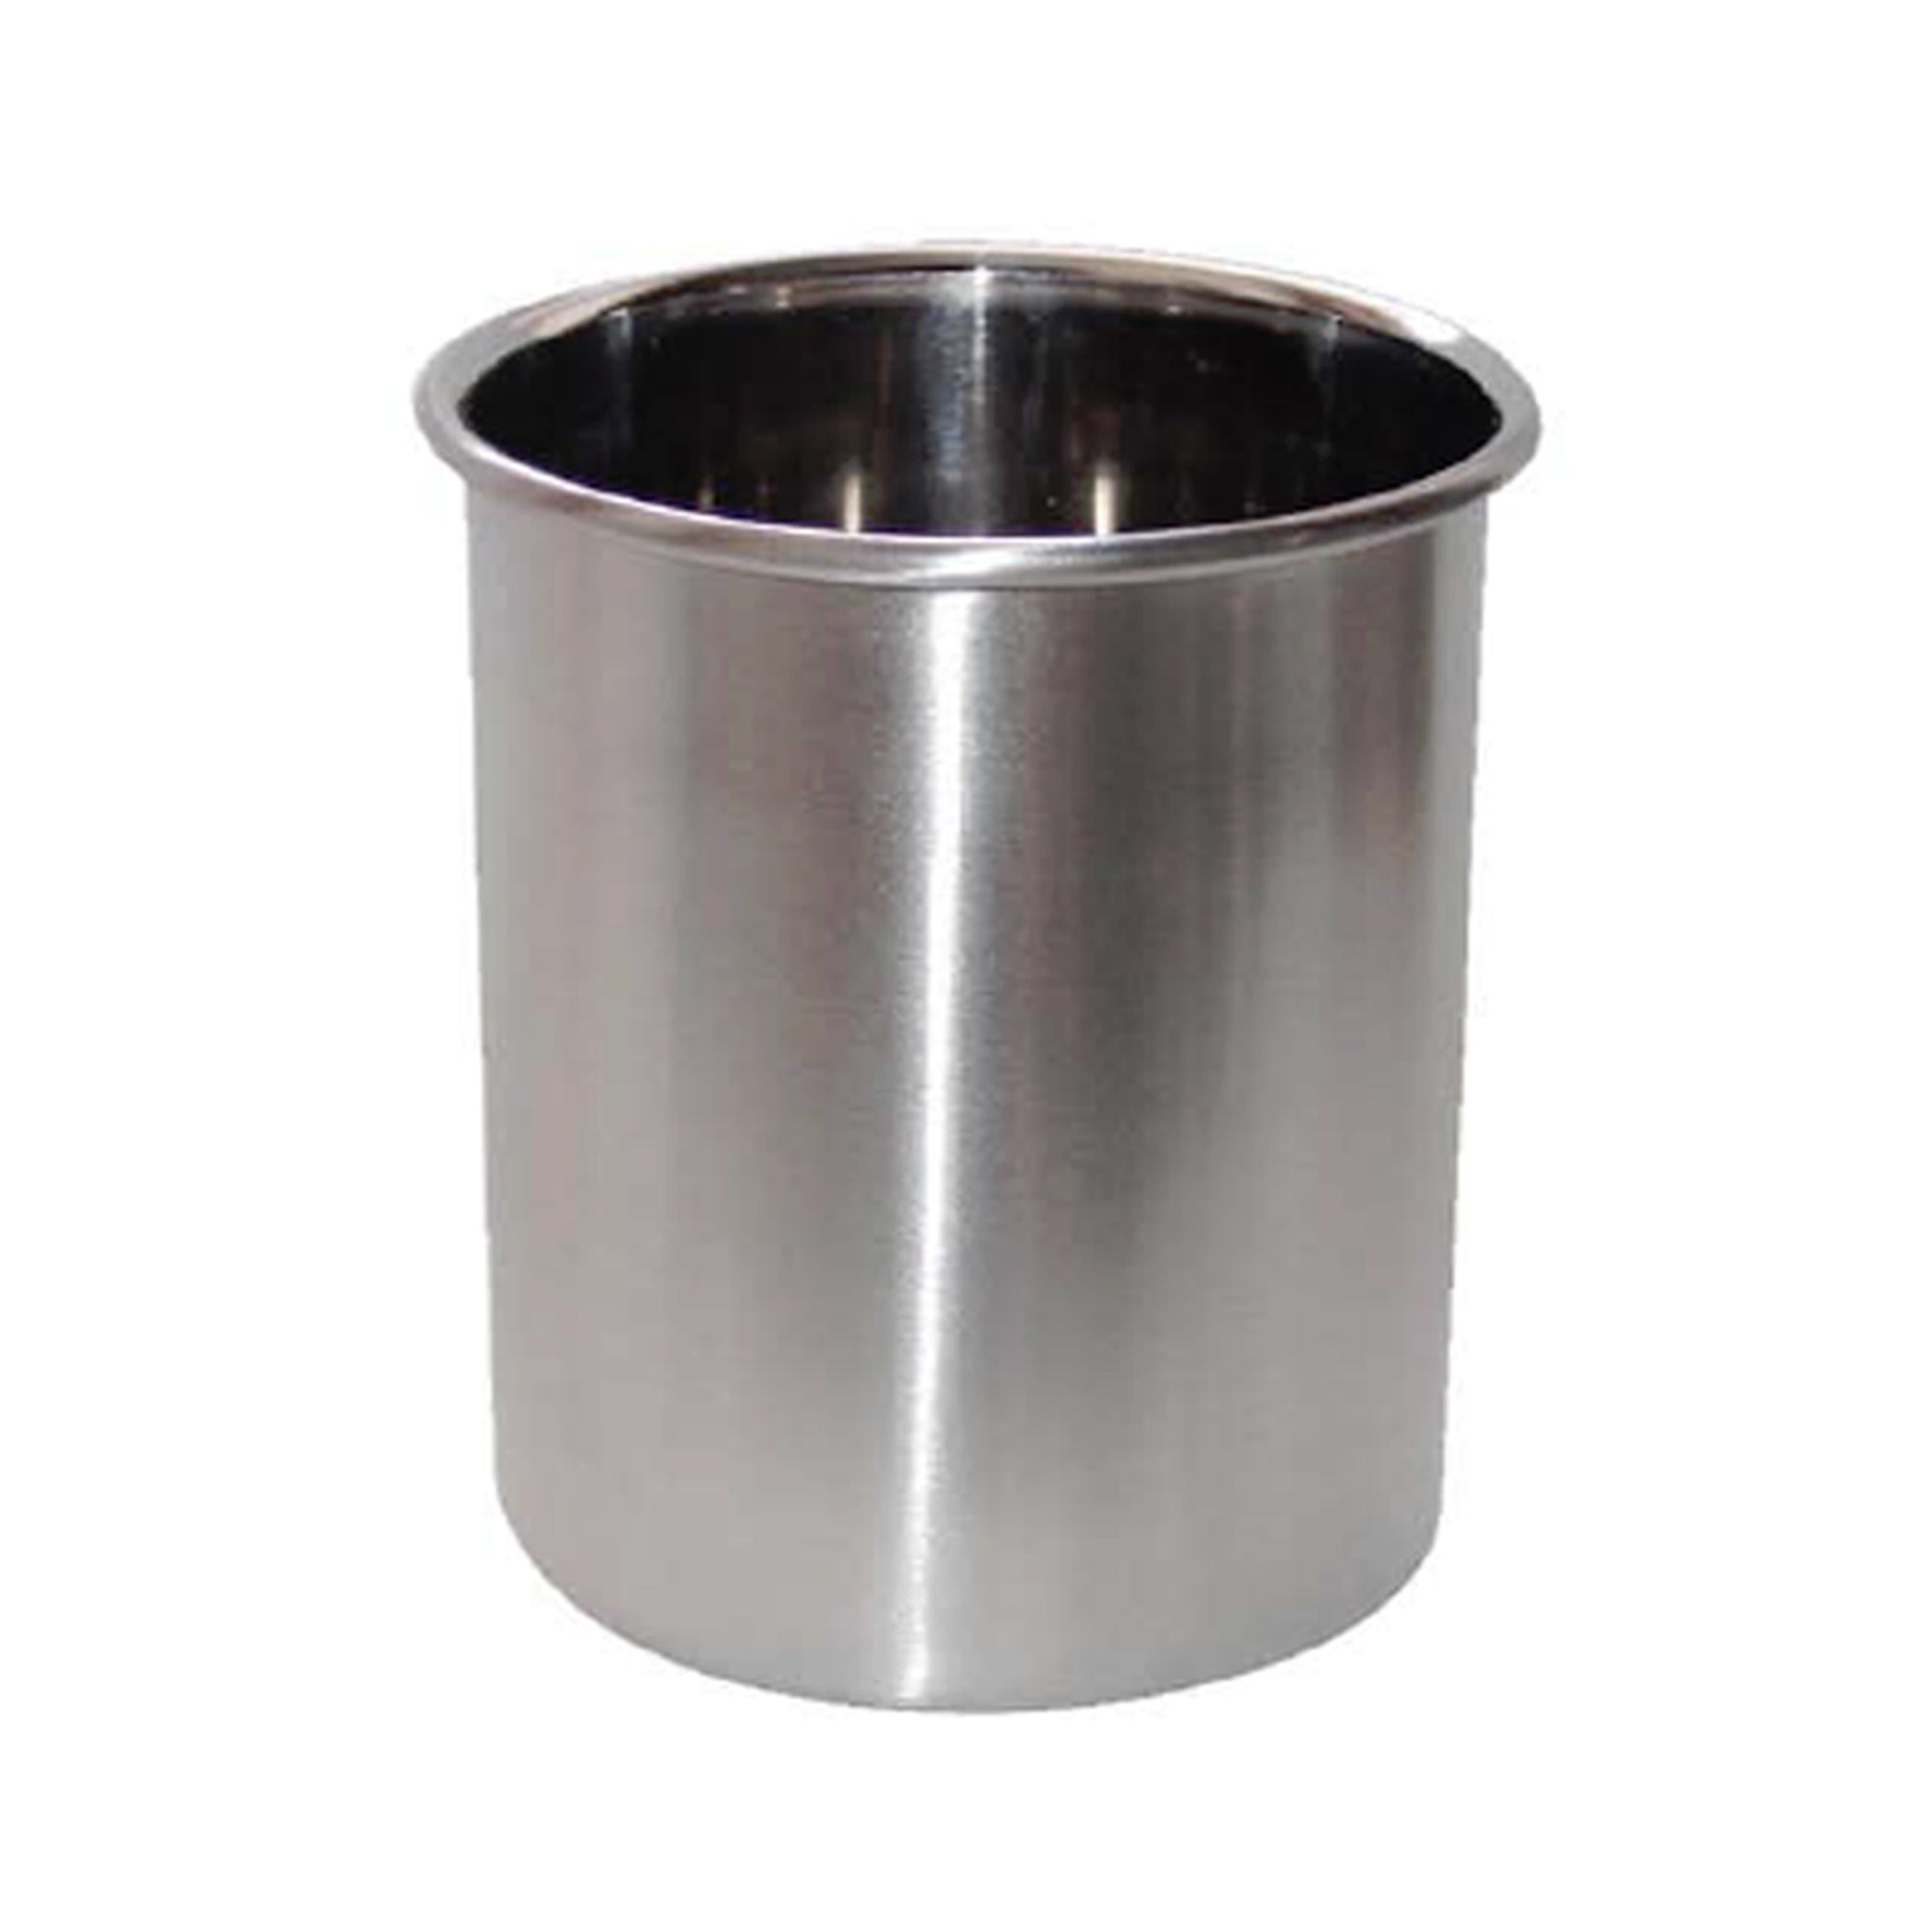 Utensiles Holder Brushed 4 Qt Plain TG-UH-8 - Nusteel